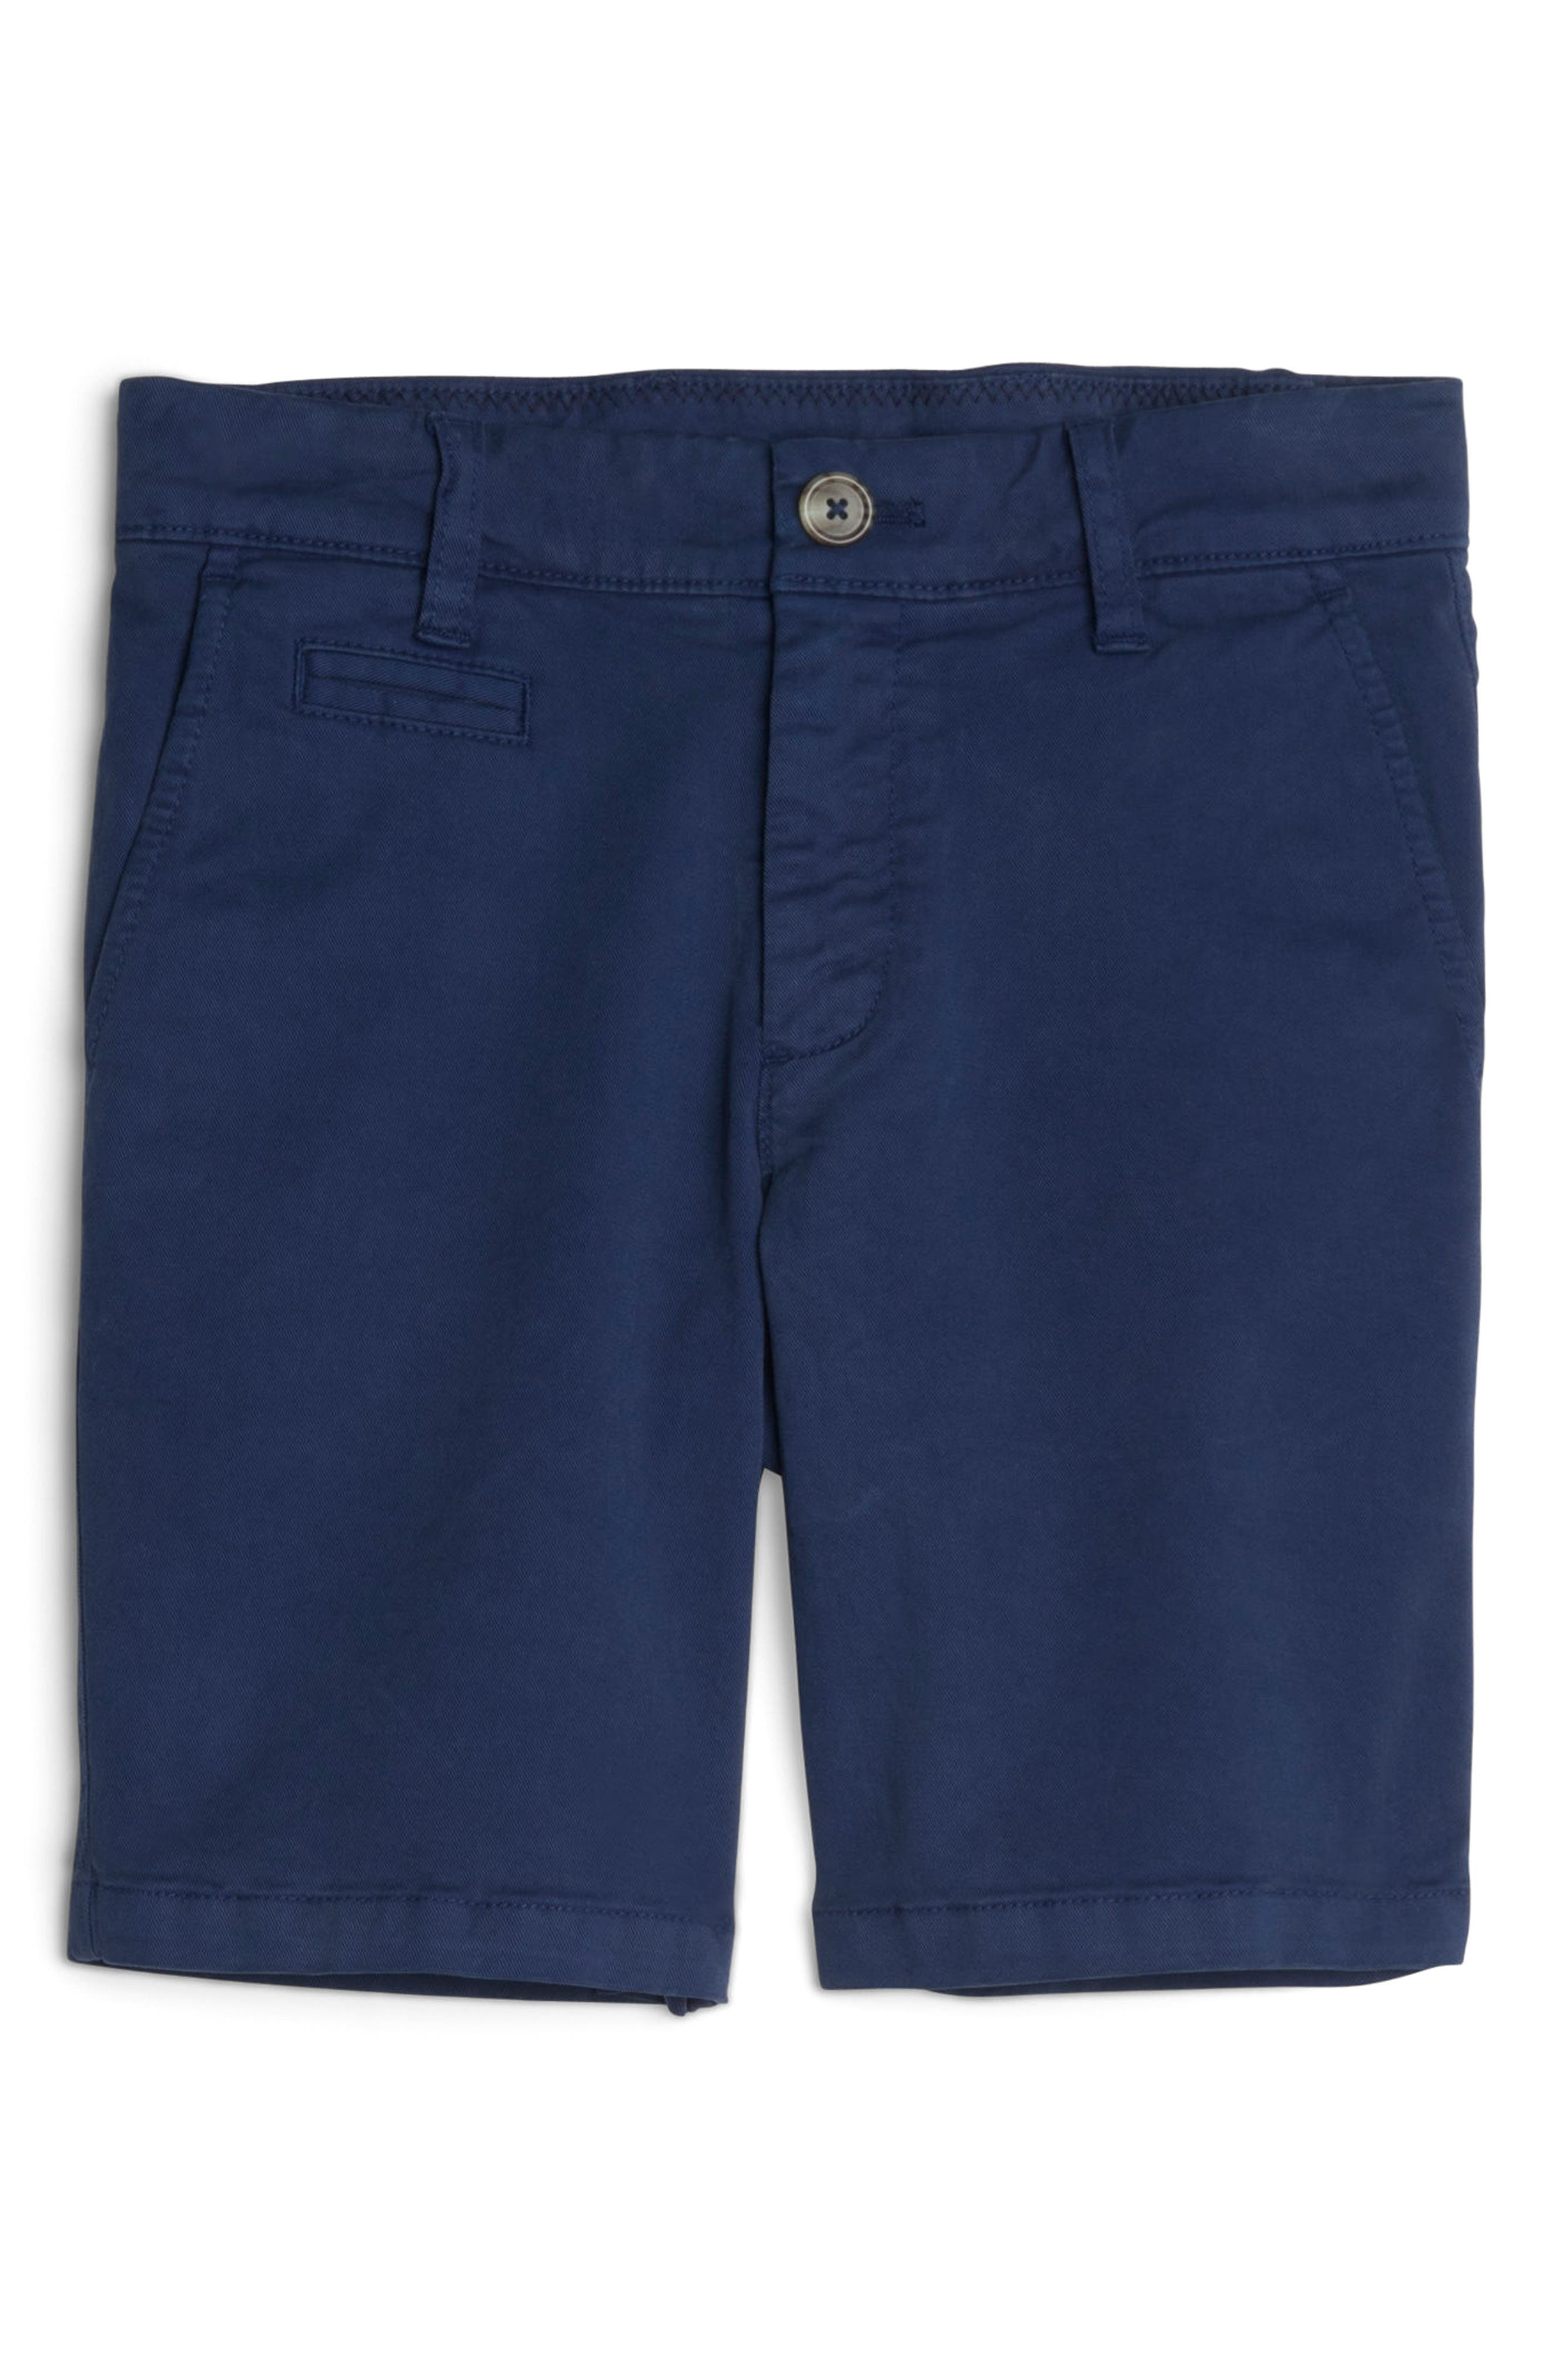 Neal Cotton Twill Shorts,                             Main thumbnail 1, color,                             High Tide